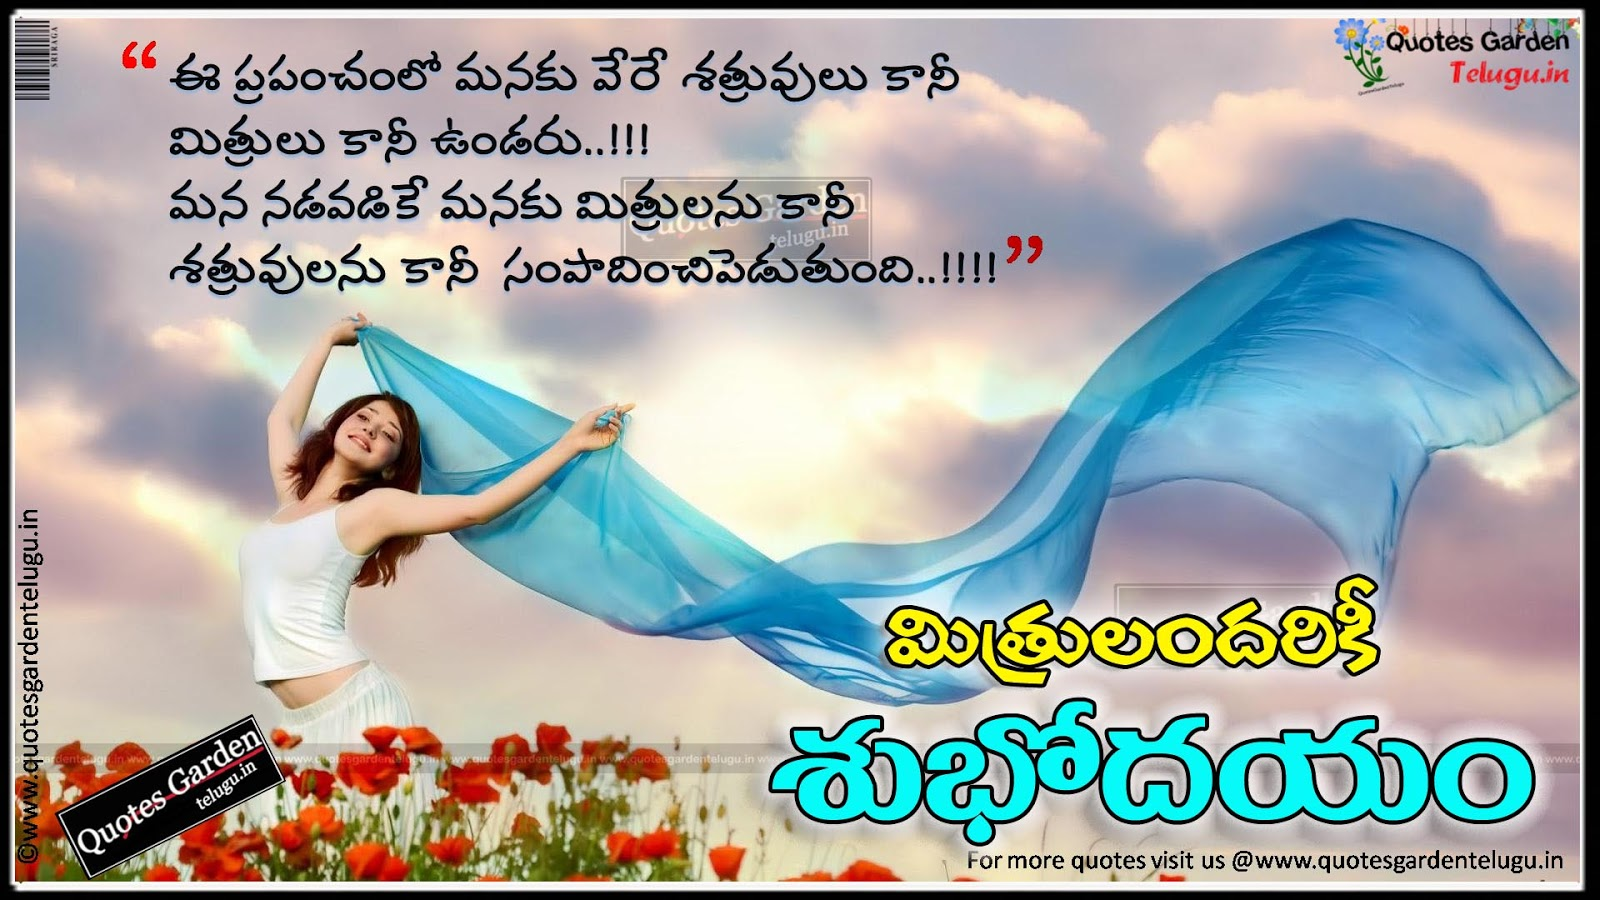 beautiful quotes on life with images in telugu